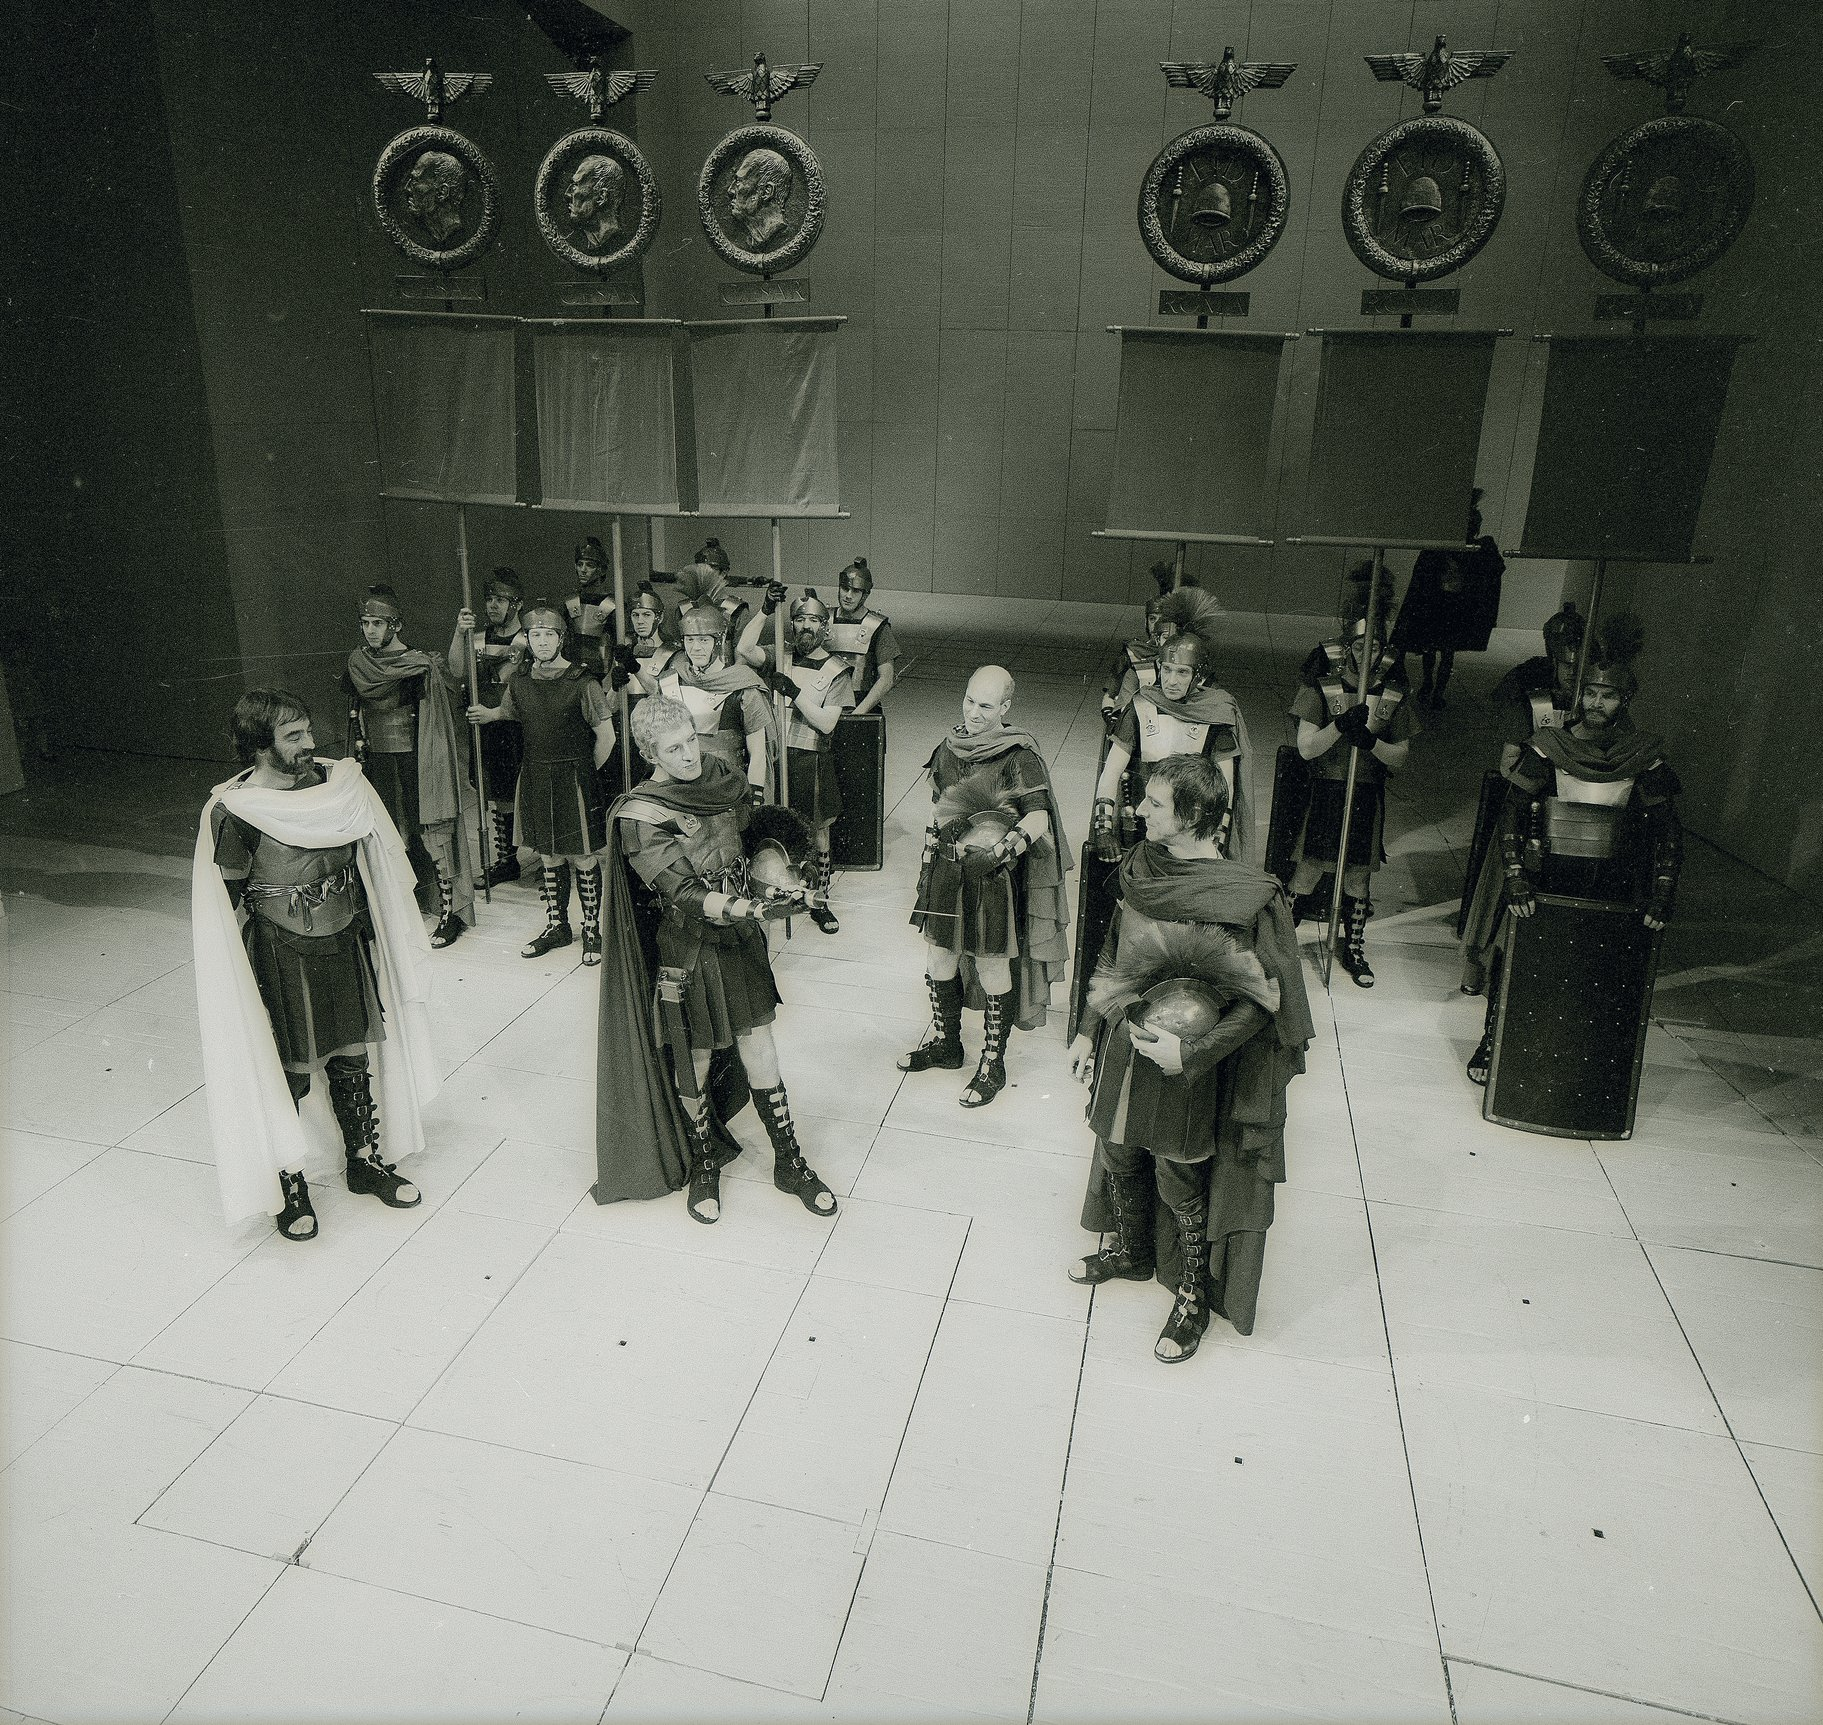 Roman Soldiers stand in formation upstage. Octavius, Lepidus and Mark Antony soldiers stand in discussion downstage